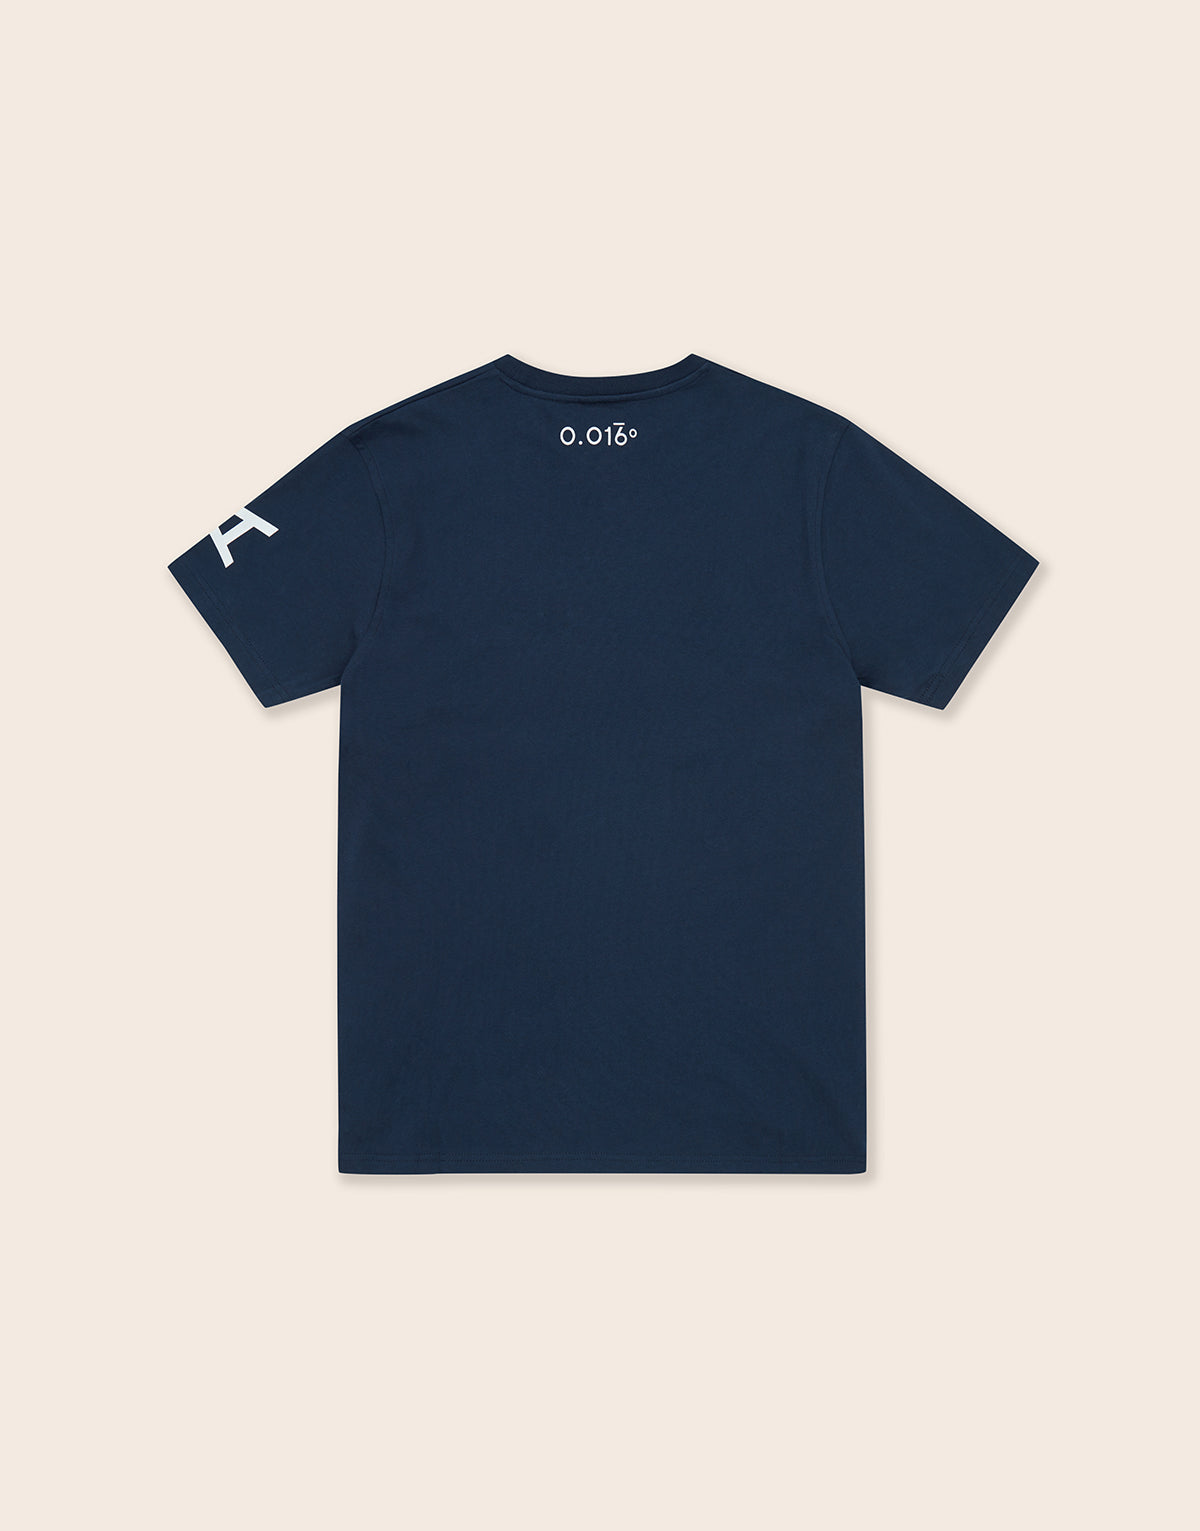 Vining T-Shirt Navy - Arcminute